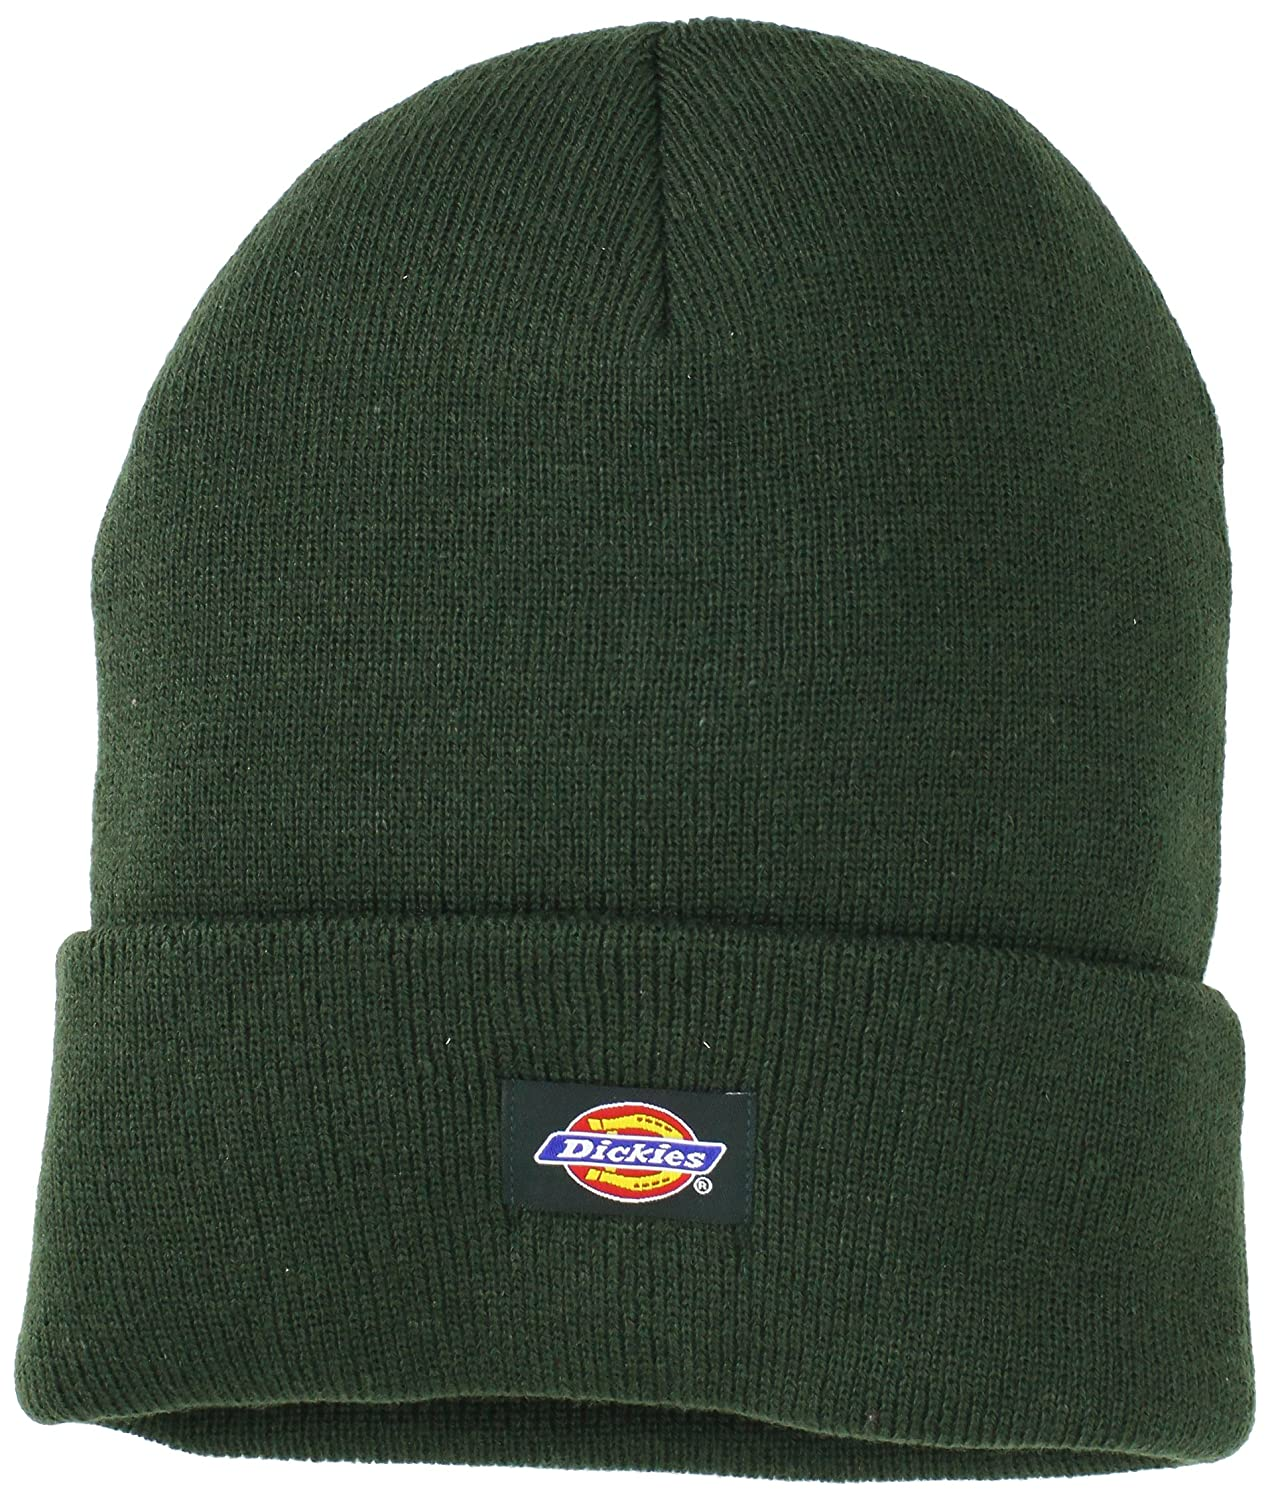 Dickies Men s 14 Inch Cuffed Knit Beanie Hat a393f39a13f